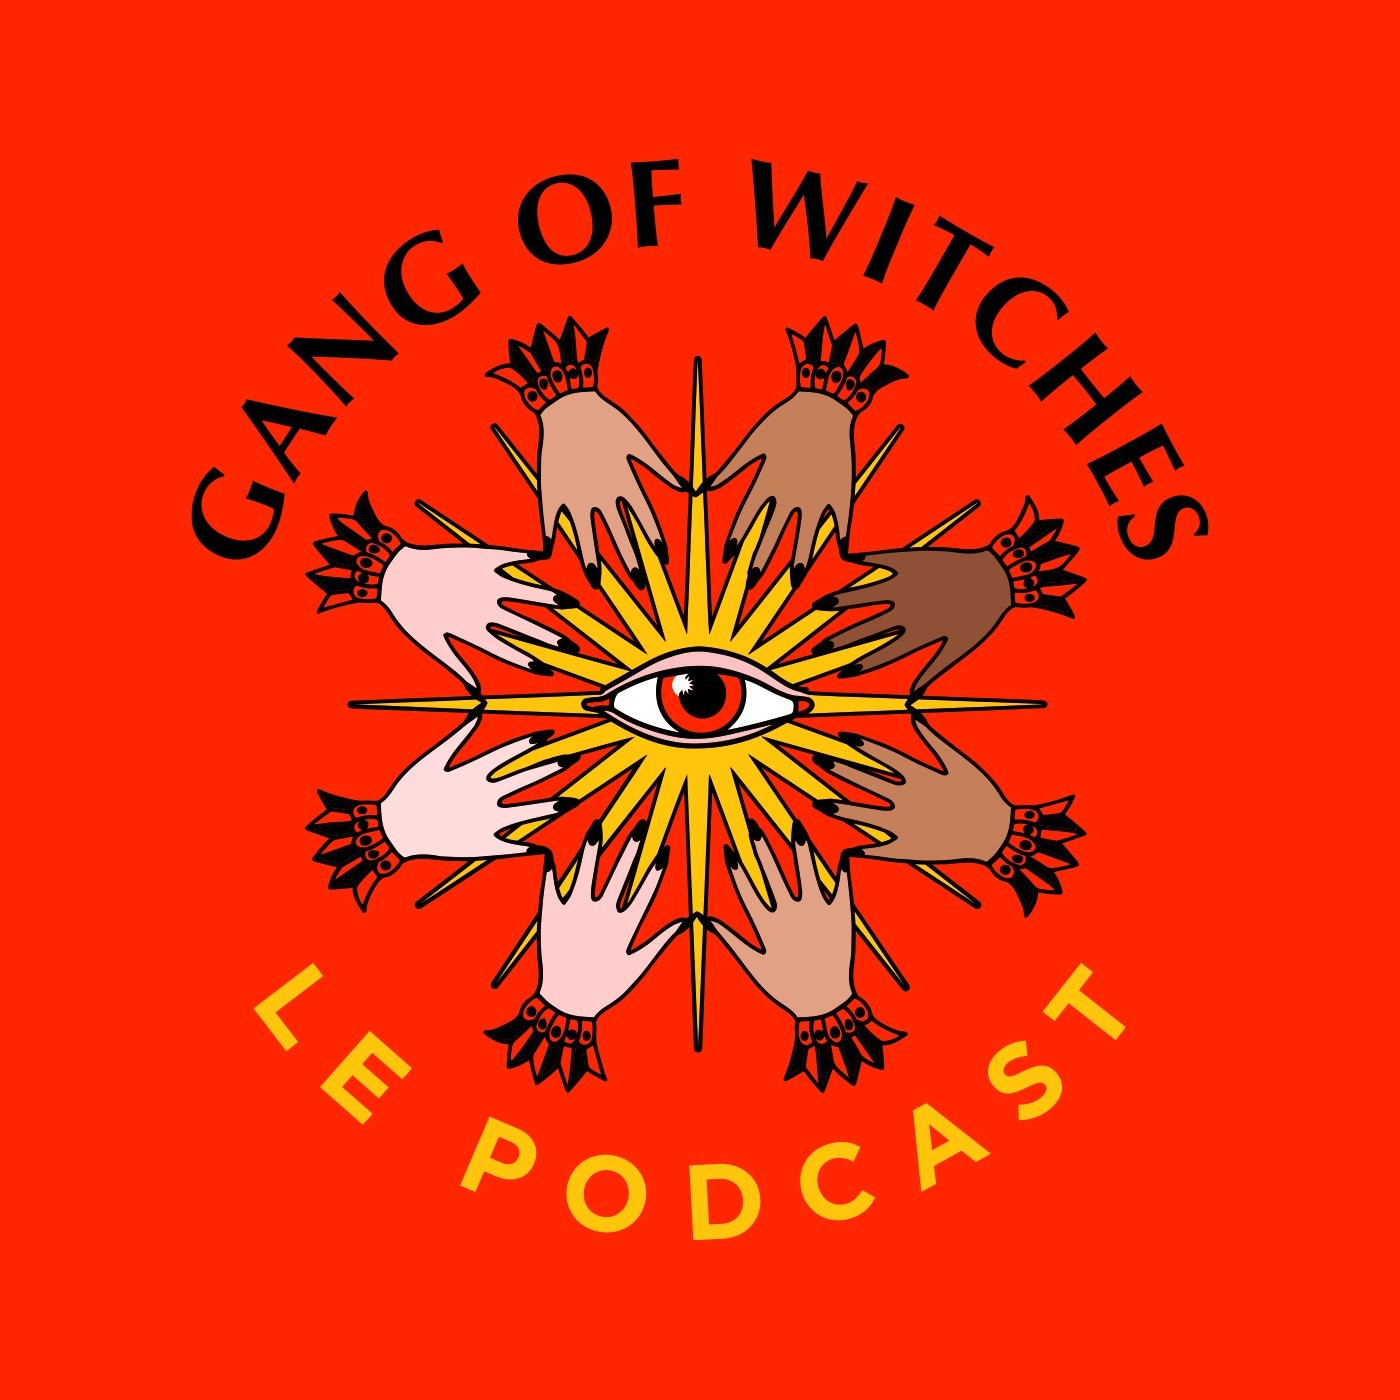 #0 Gang Of Witches Le Podcast - Introduction